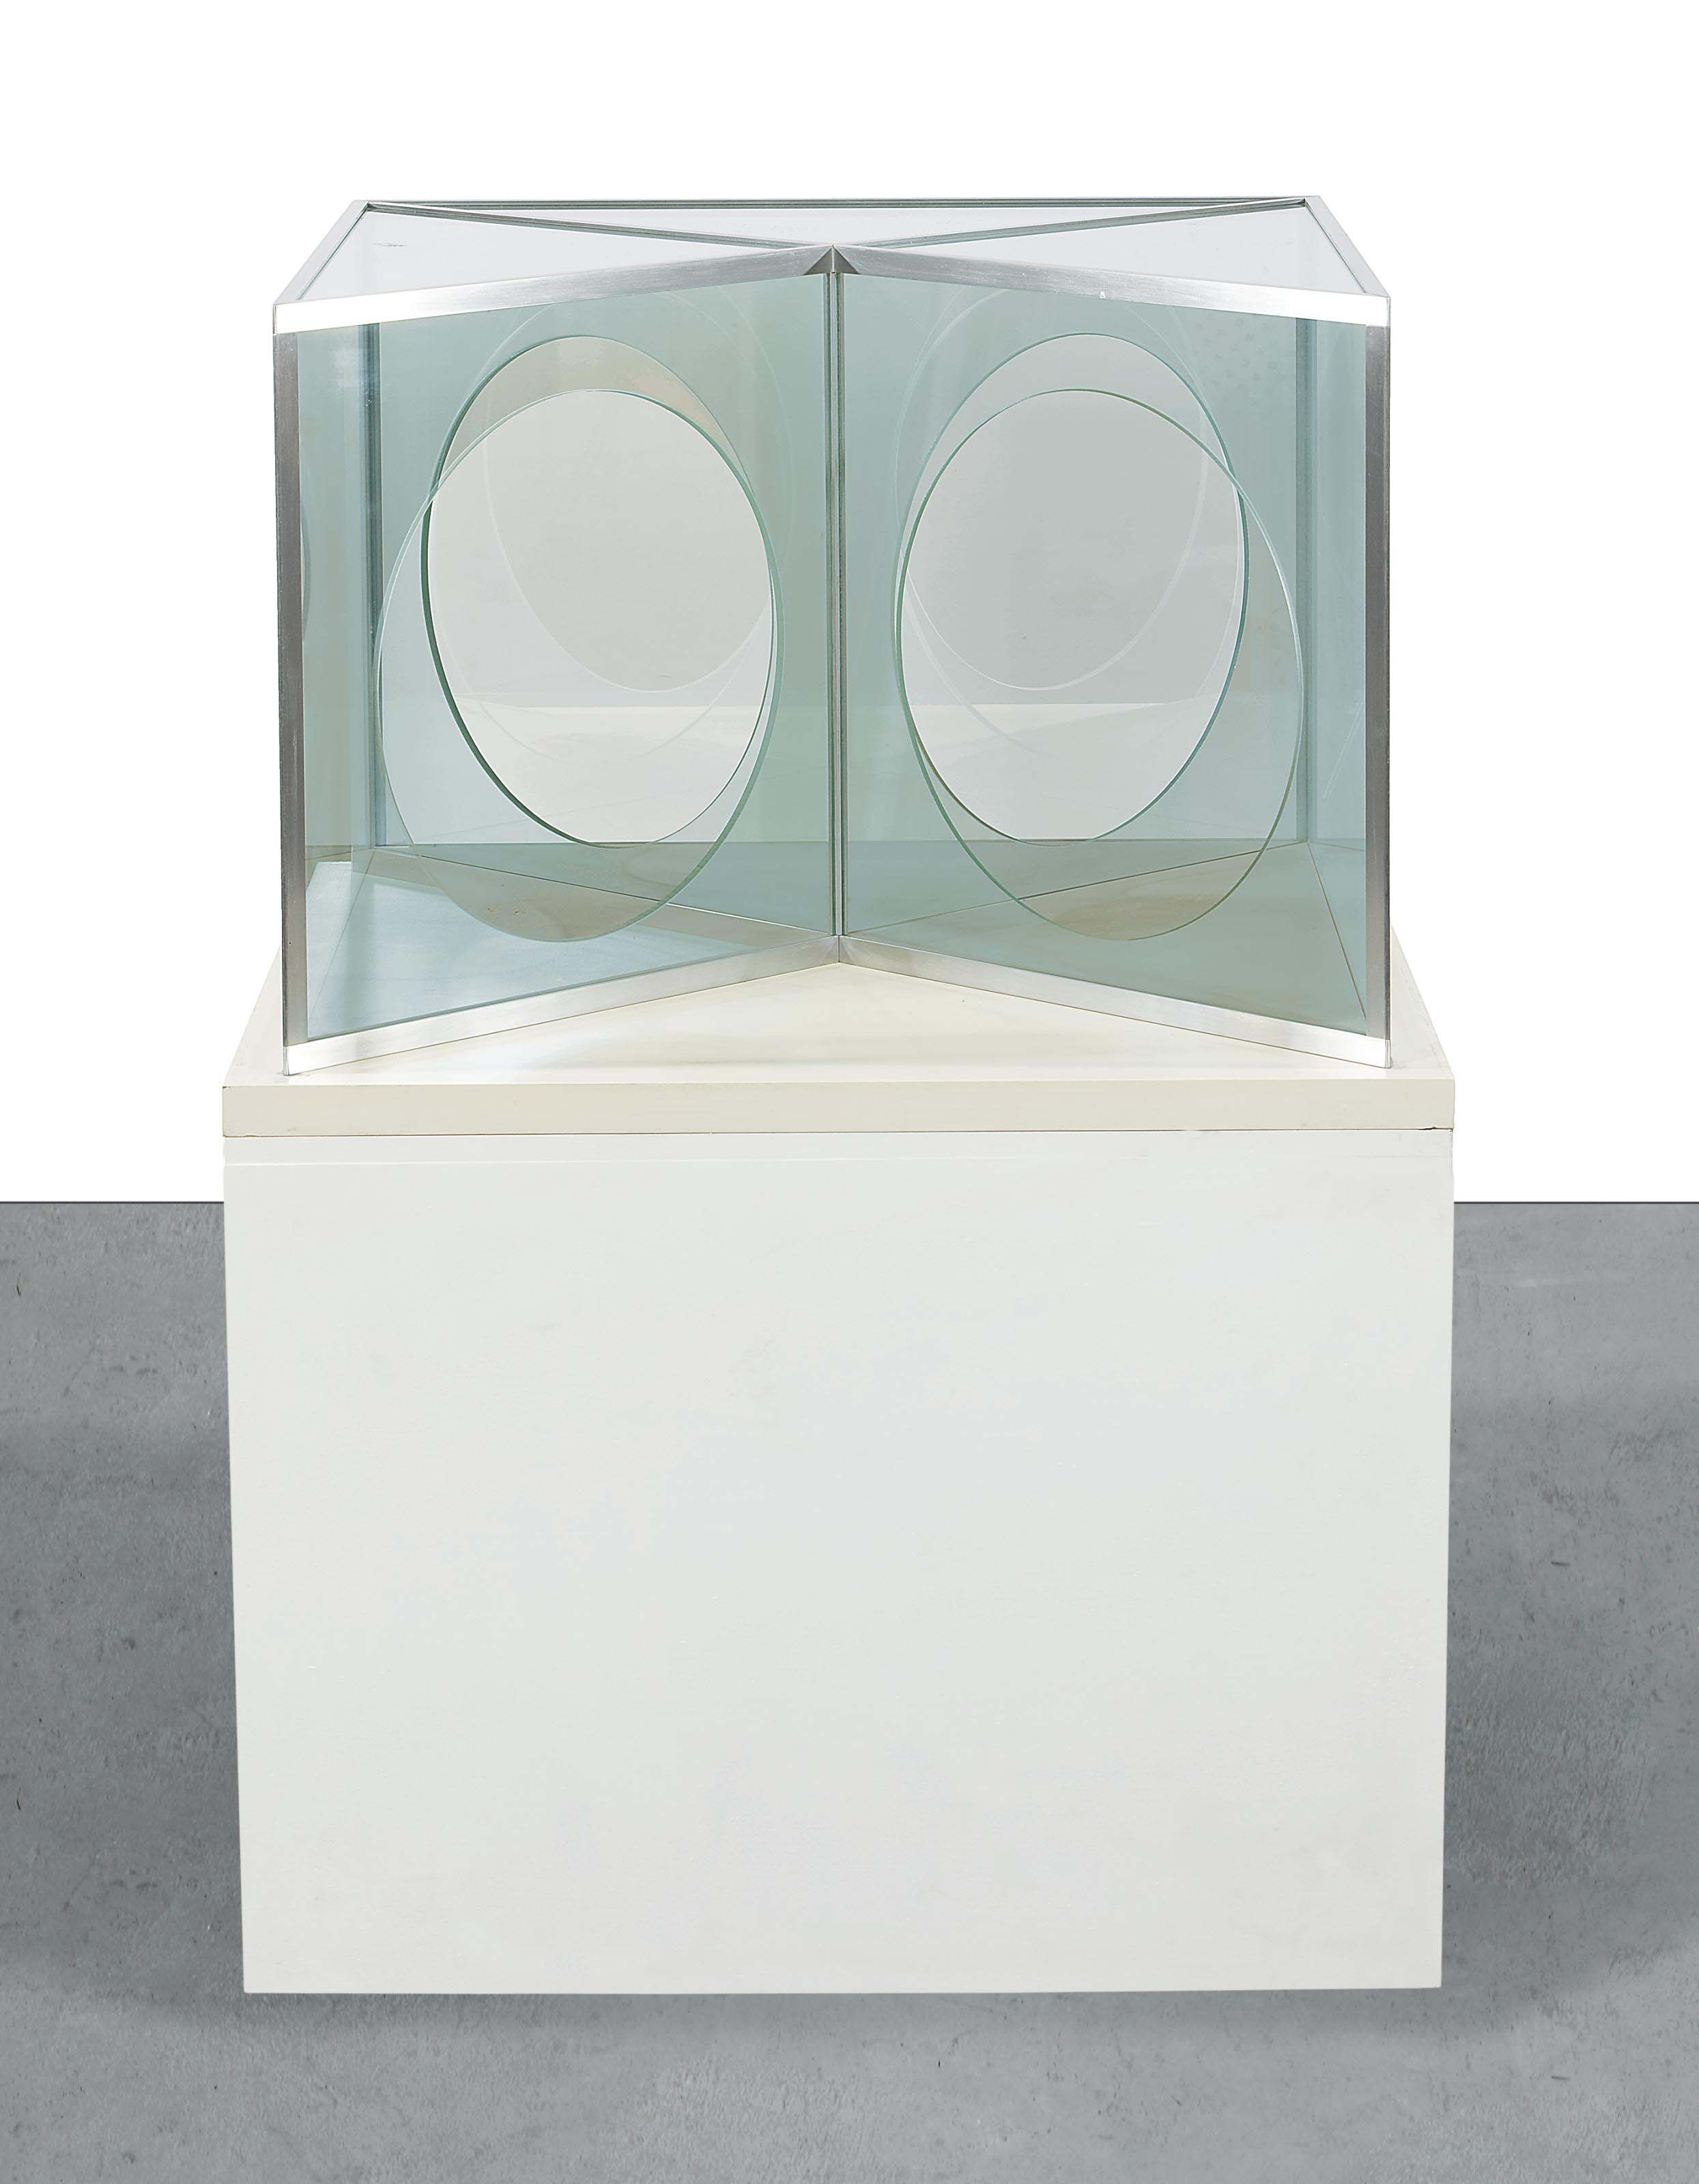 Pavilion Influenced by Moon Windows